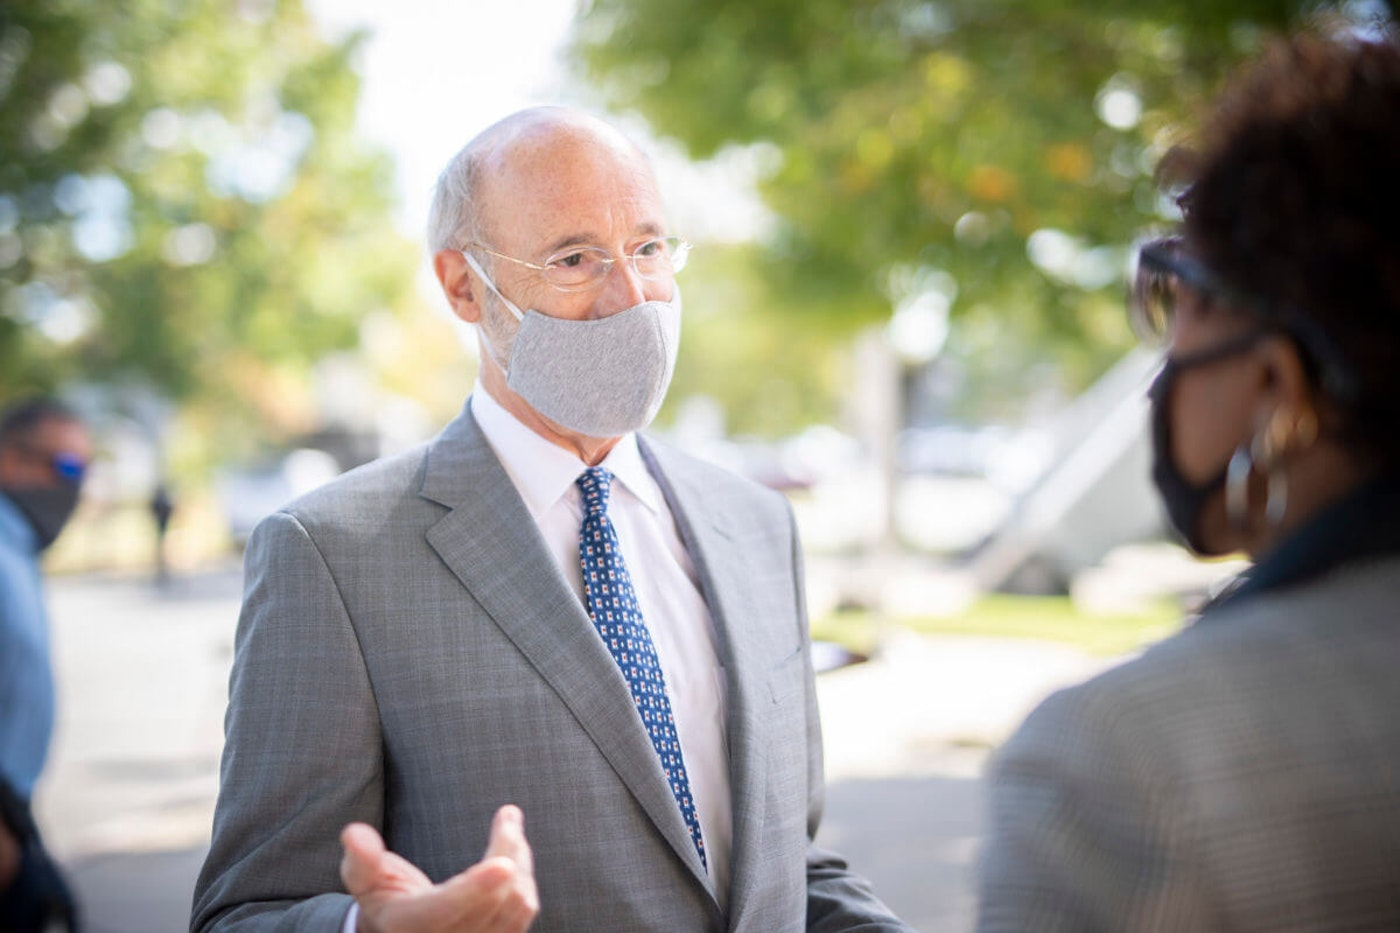 Gov. Tom Wolf speaks to someone at an event in York County in October. (Flickr/Office of Gov. Tom Wolf)